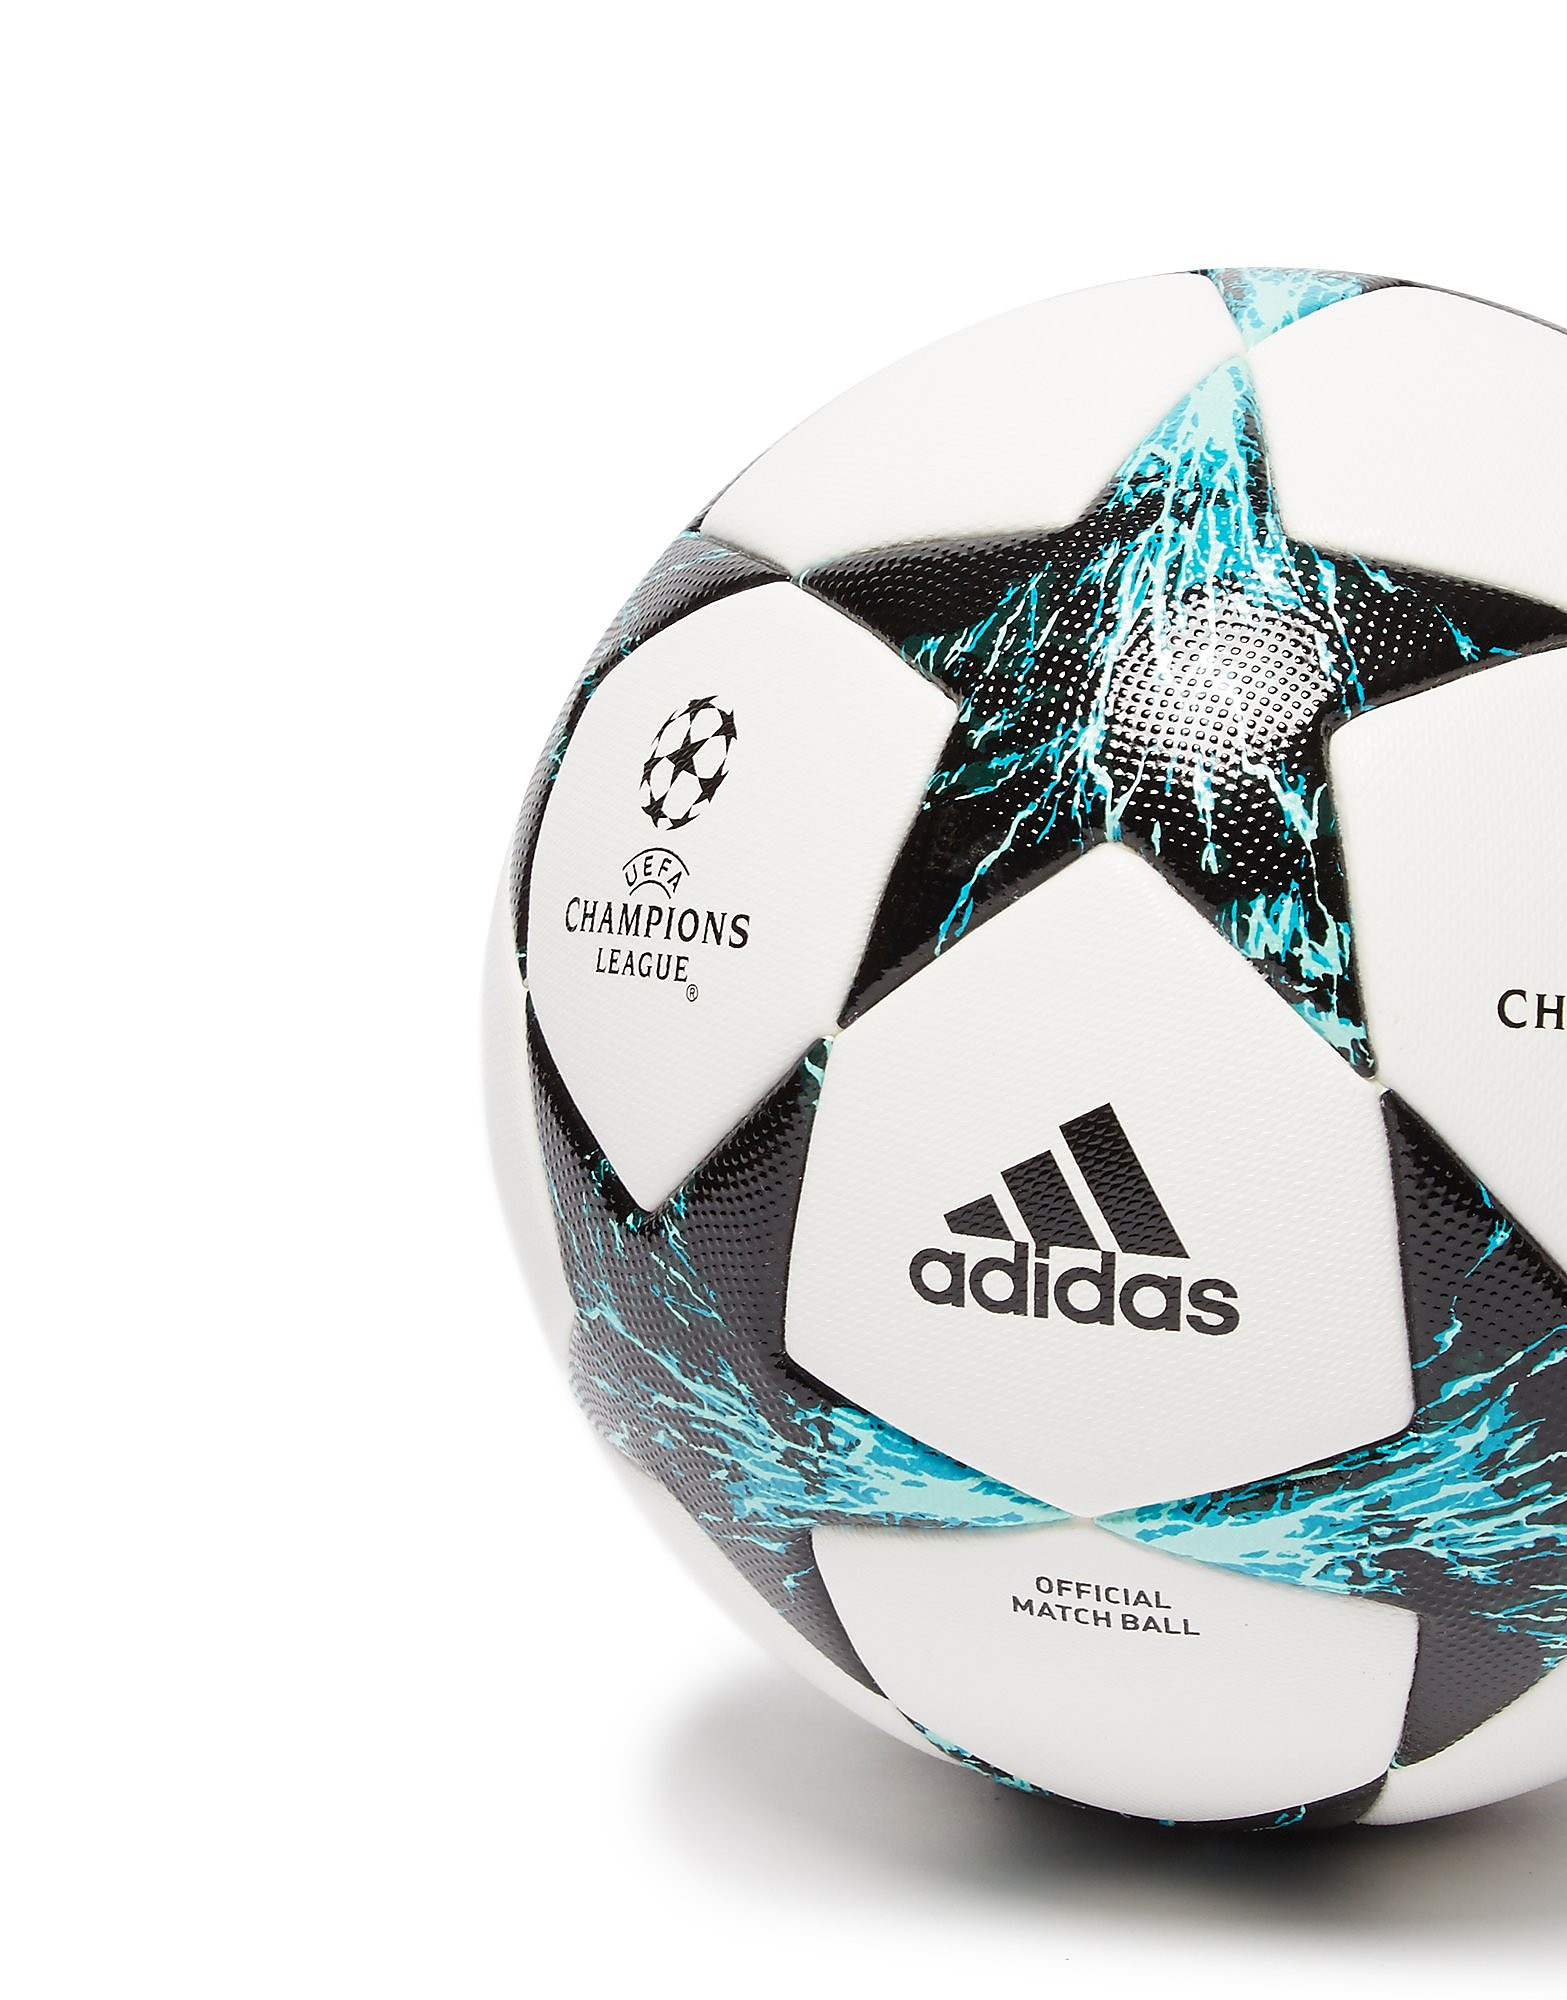 adidas Finale 17 Champions League Official Football